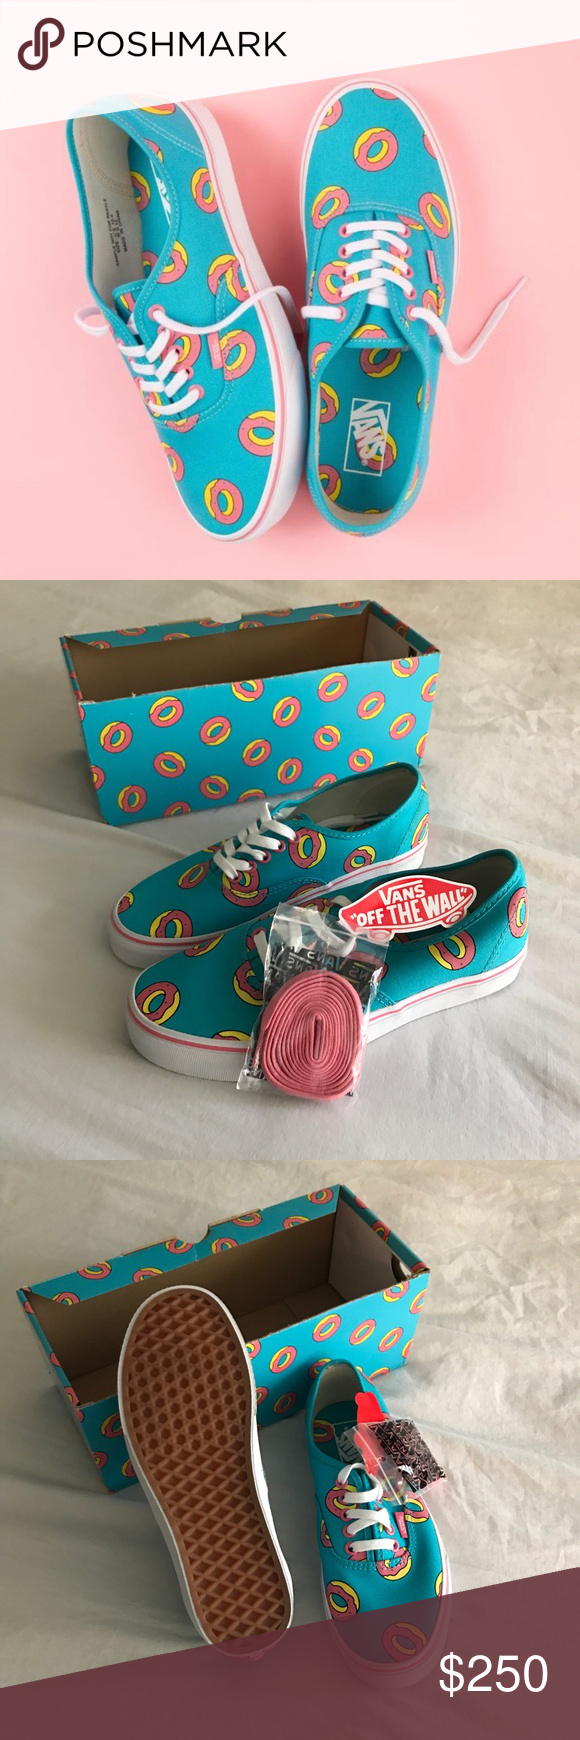 cc533ed9ab3d Vans Odd Future Authentic Scuba Blue Donut Shoes Limited Edition Odd Future  x Vans skate shoe